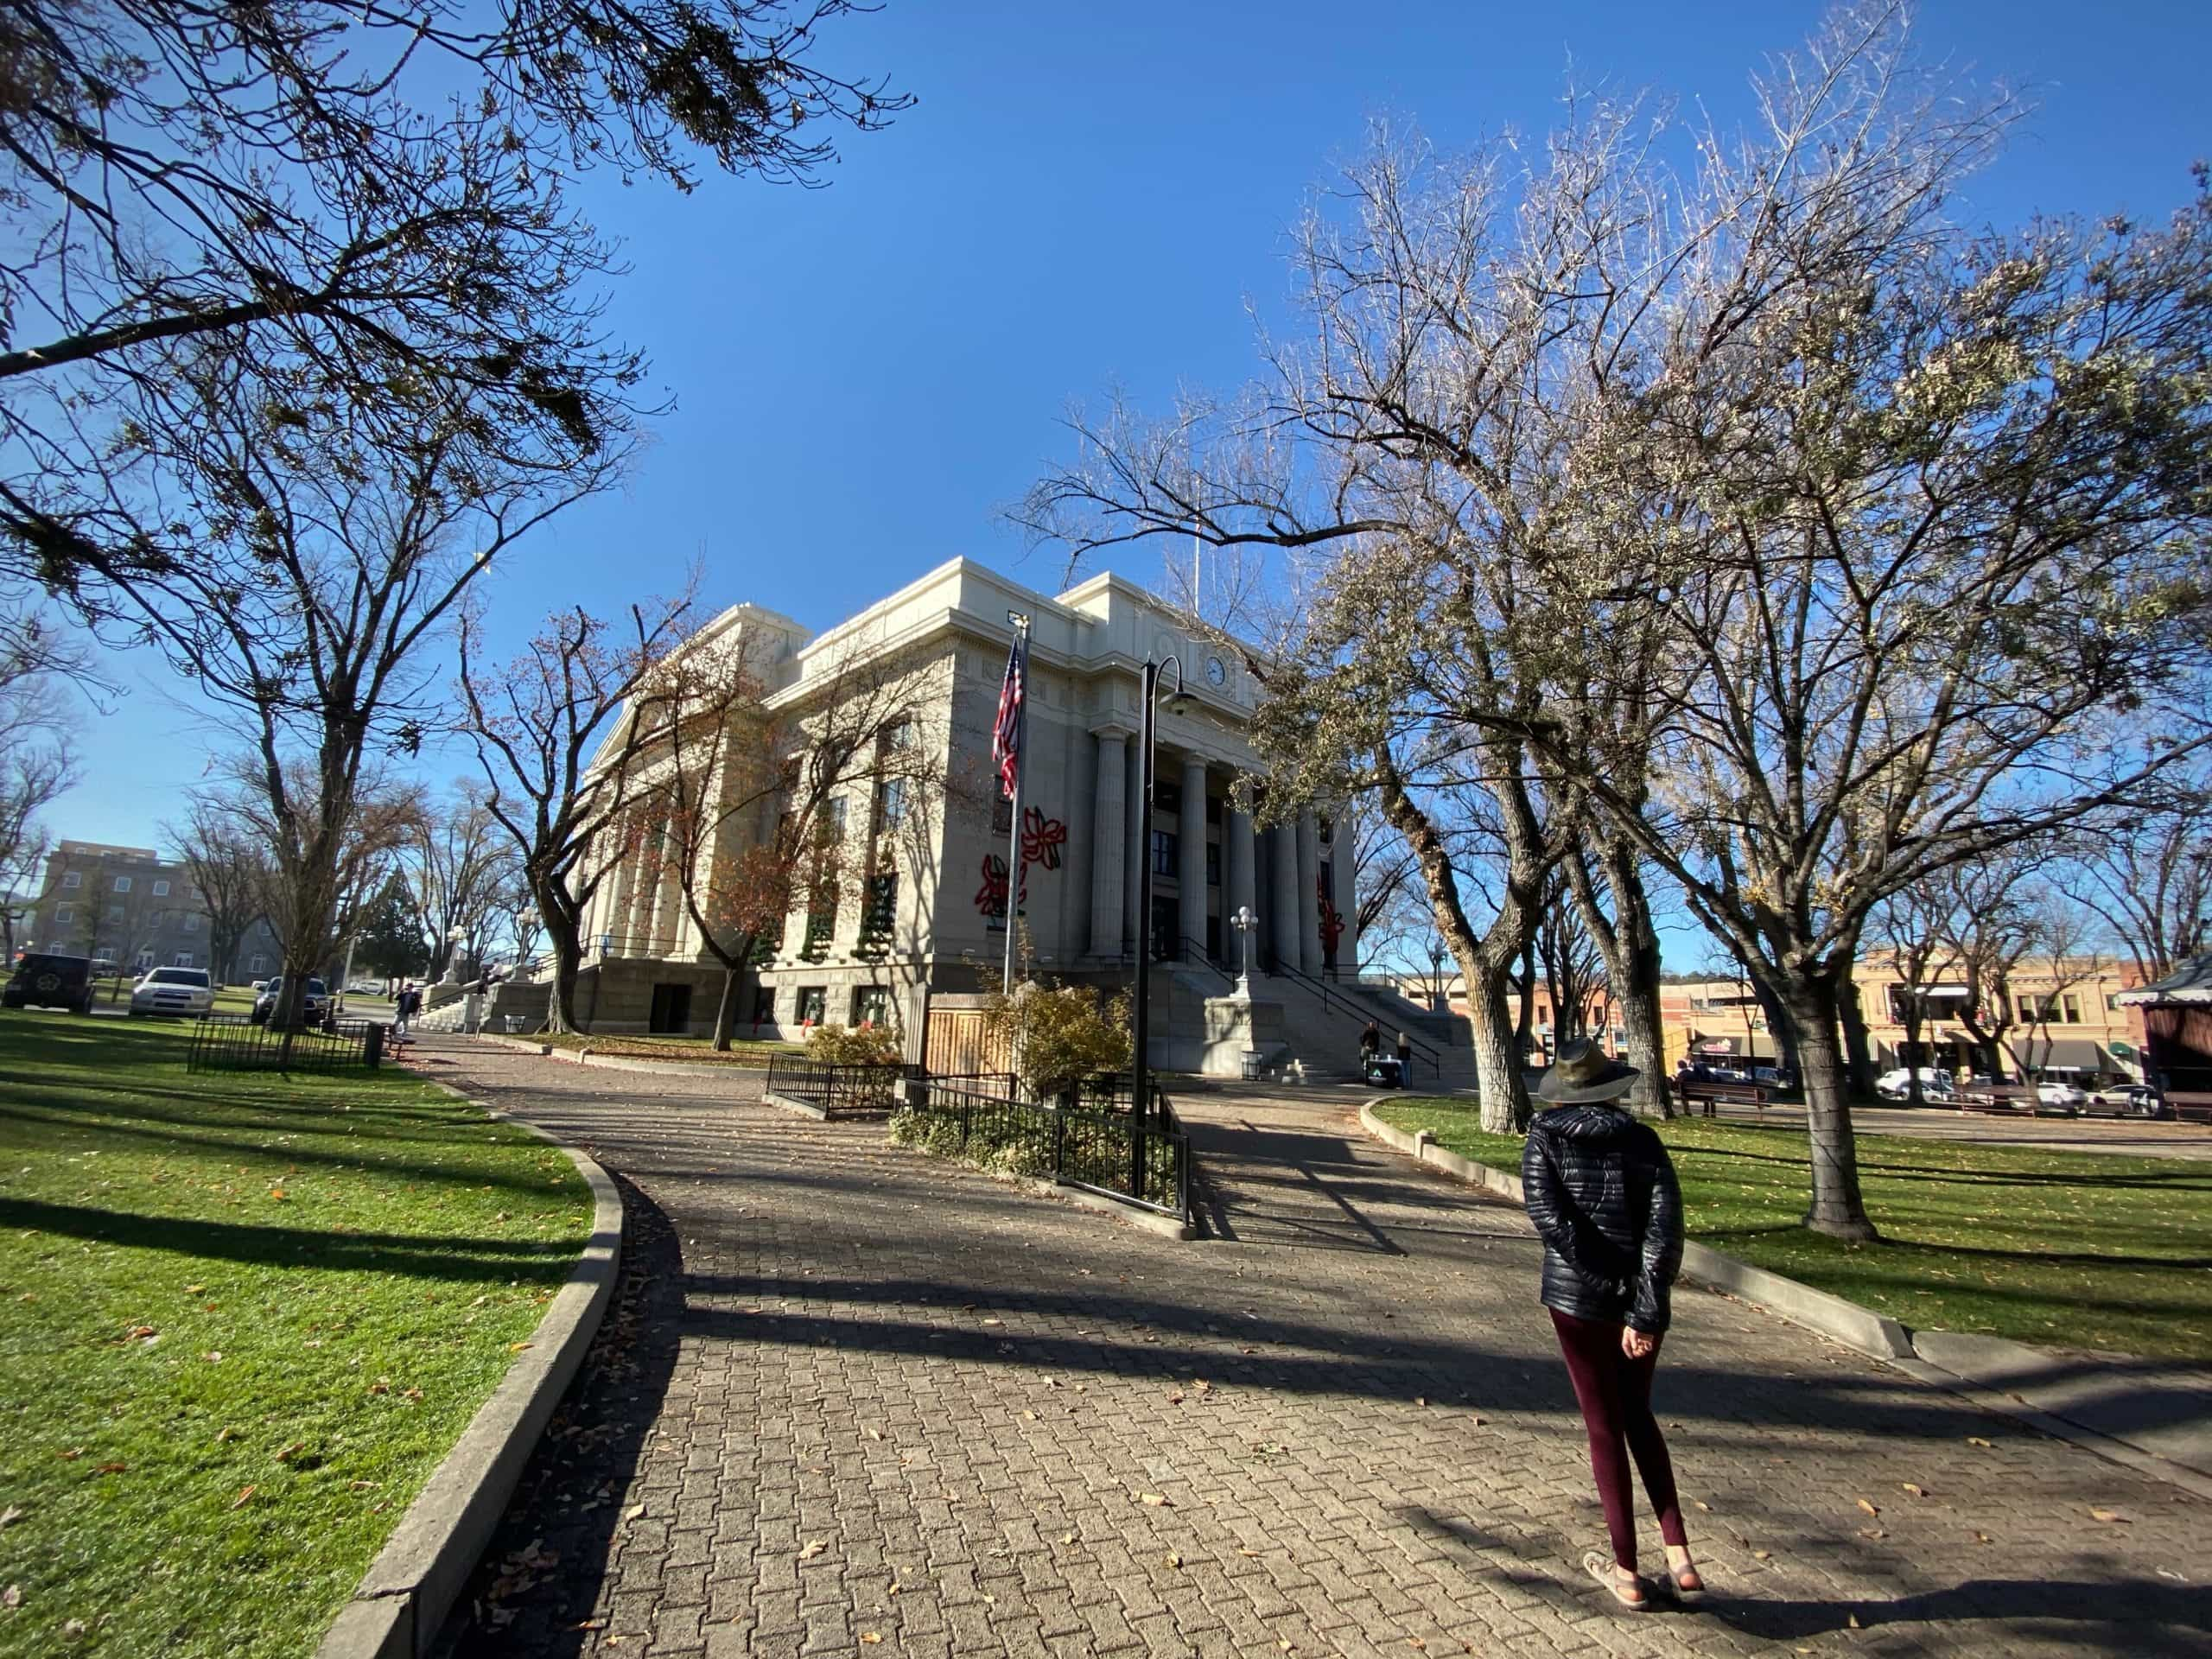 Yavapai courthouse in Prescott, AZ. The starting point for the ride.